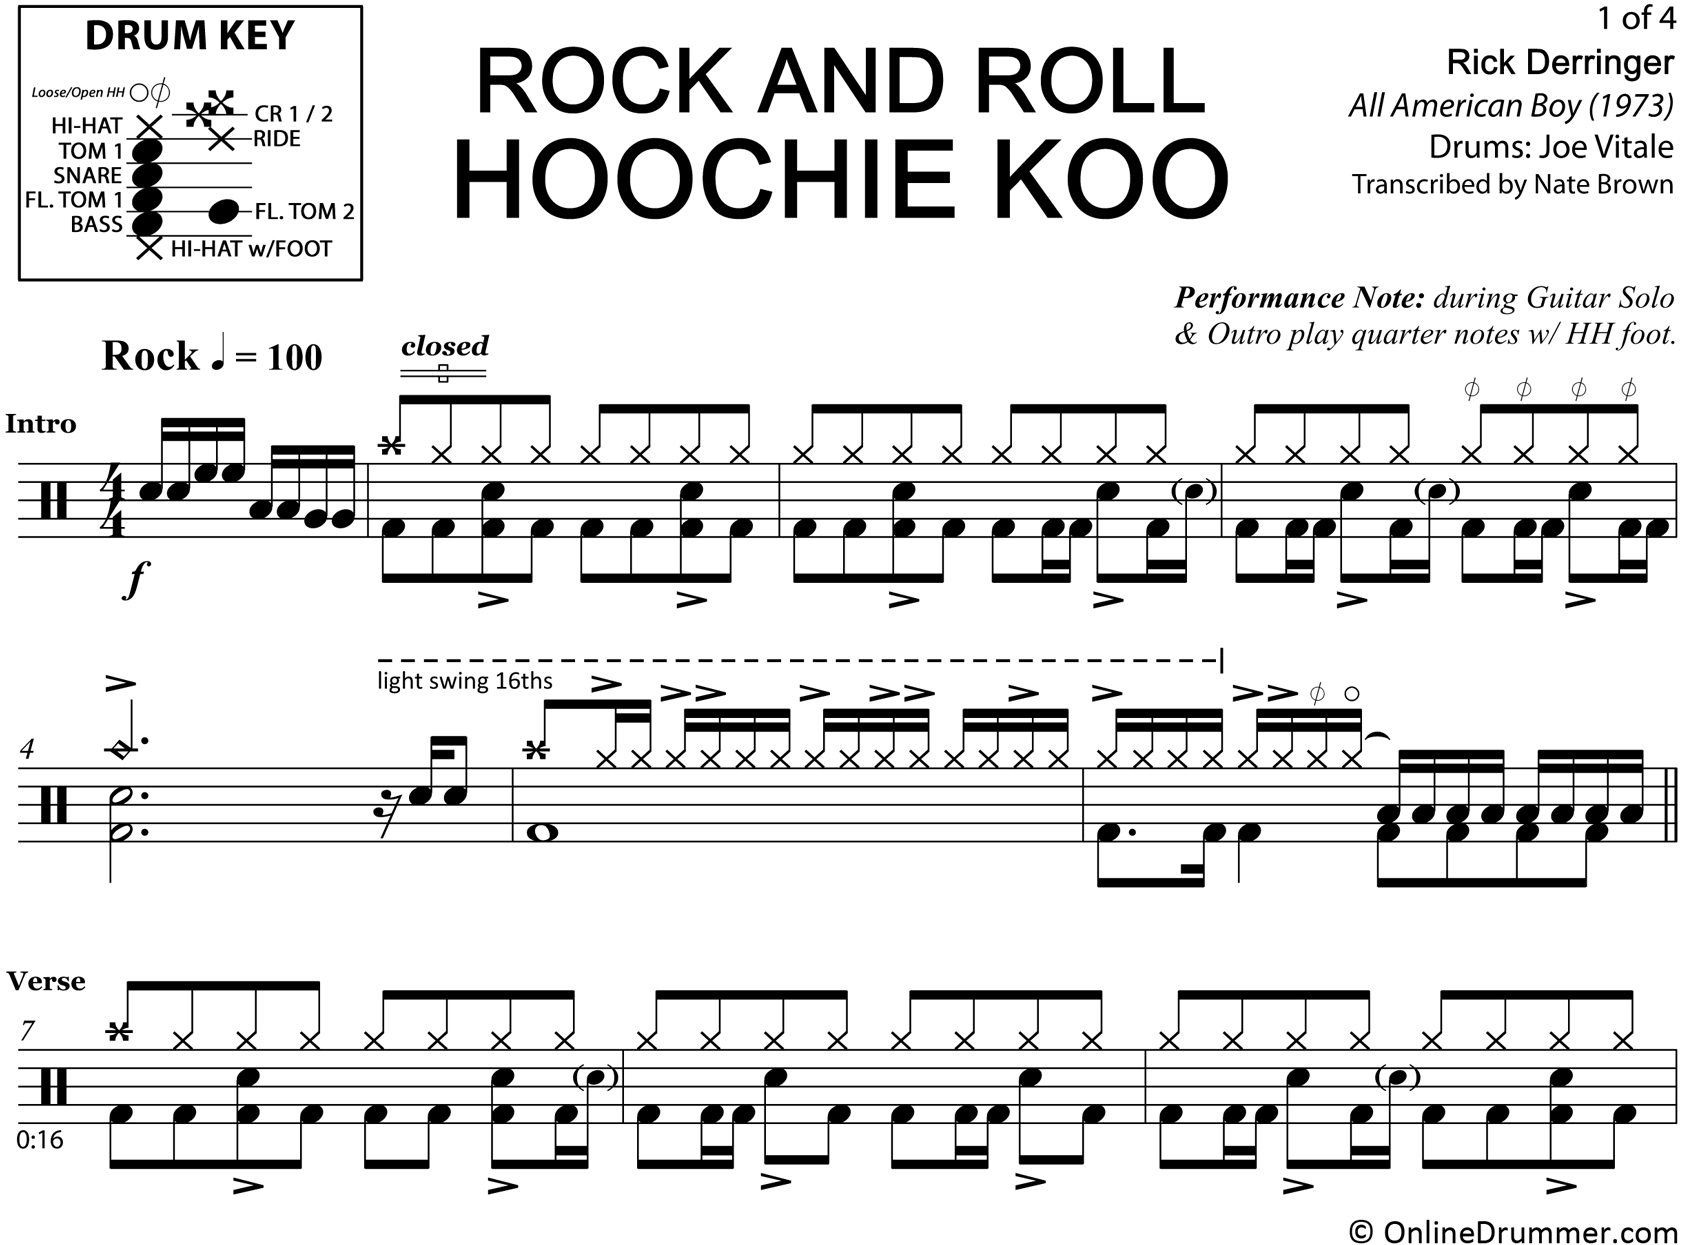 Rock and Roll Hoochie Koo - Rick Derringer - Drum Sheet Music